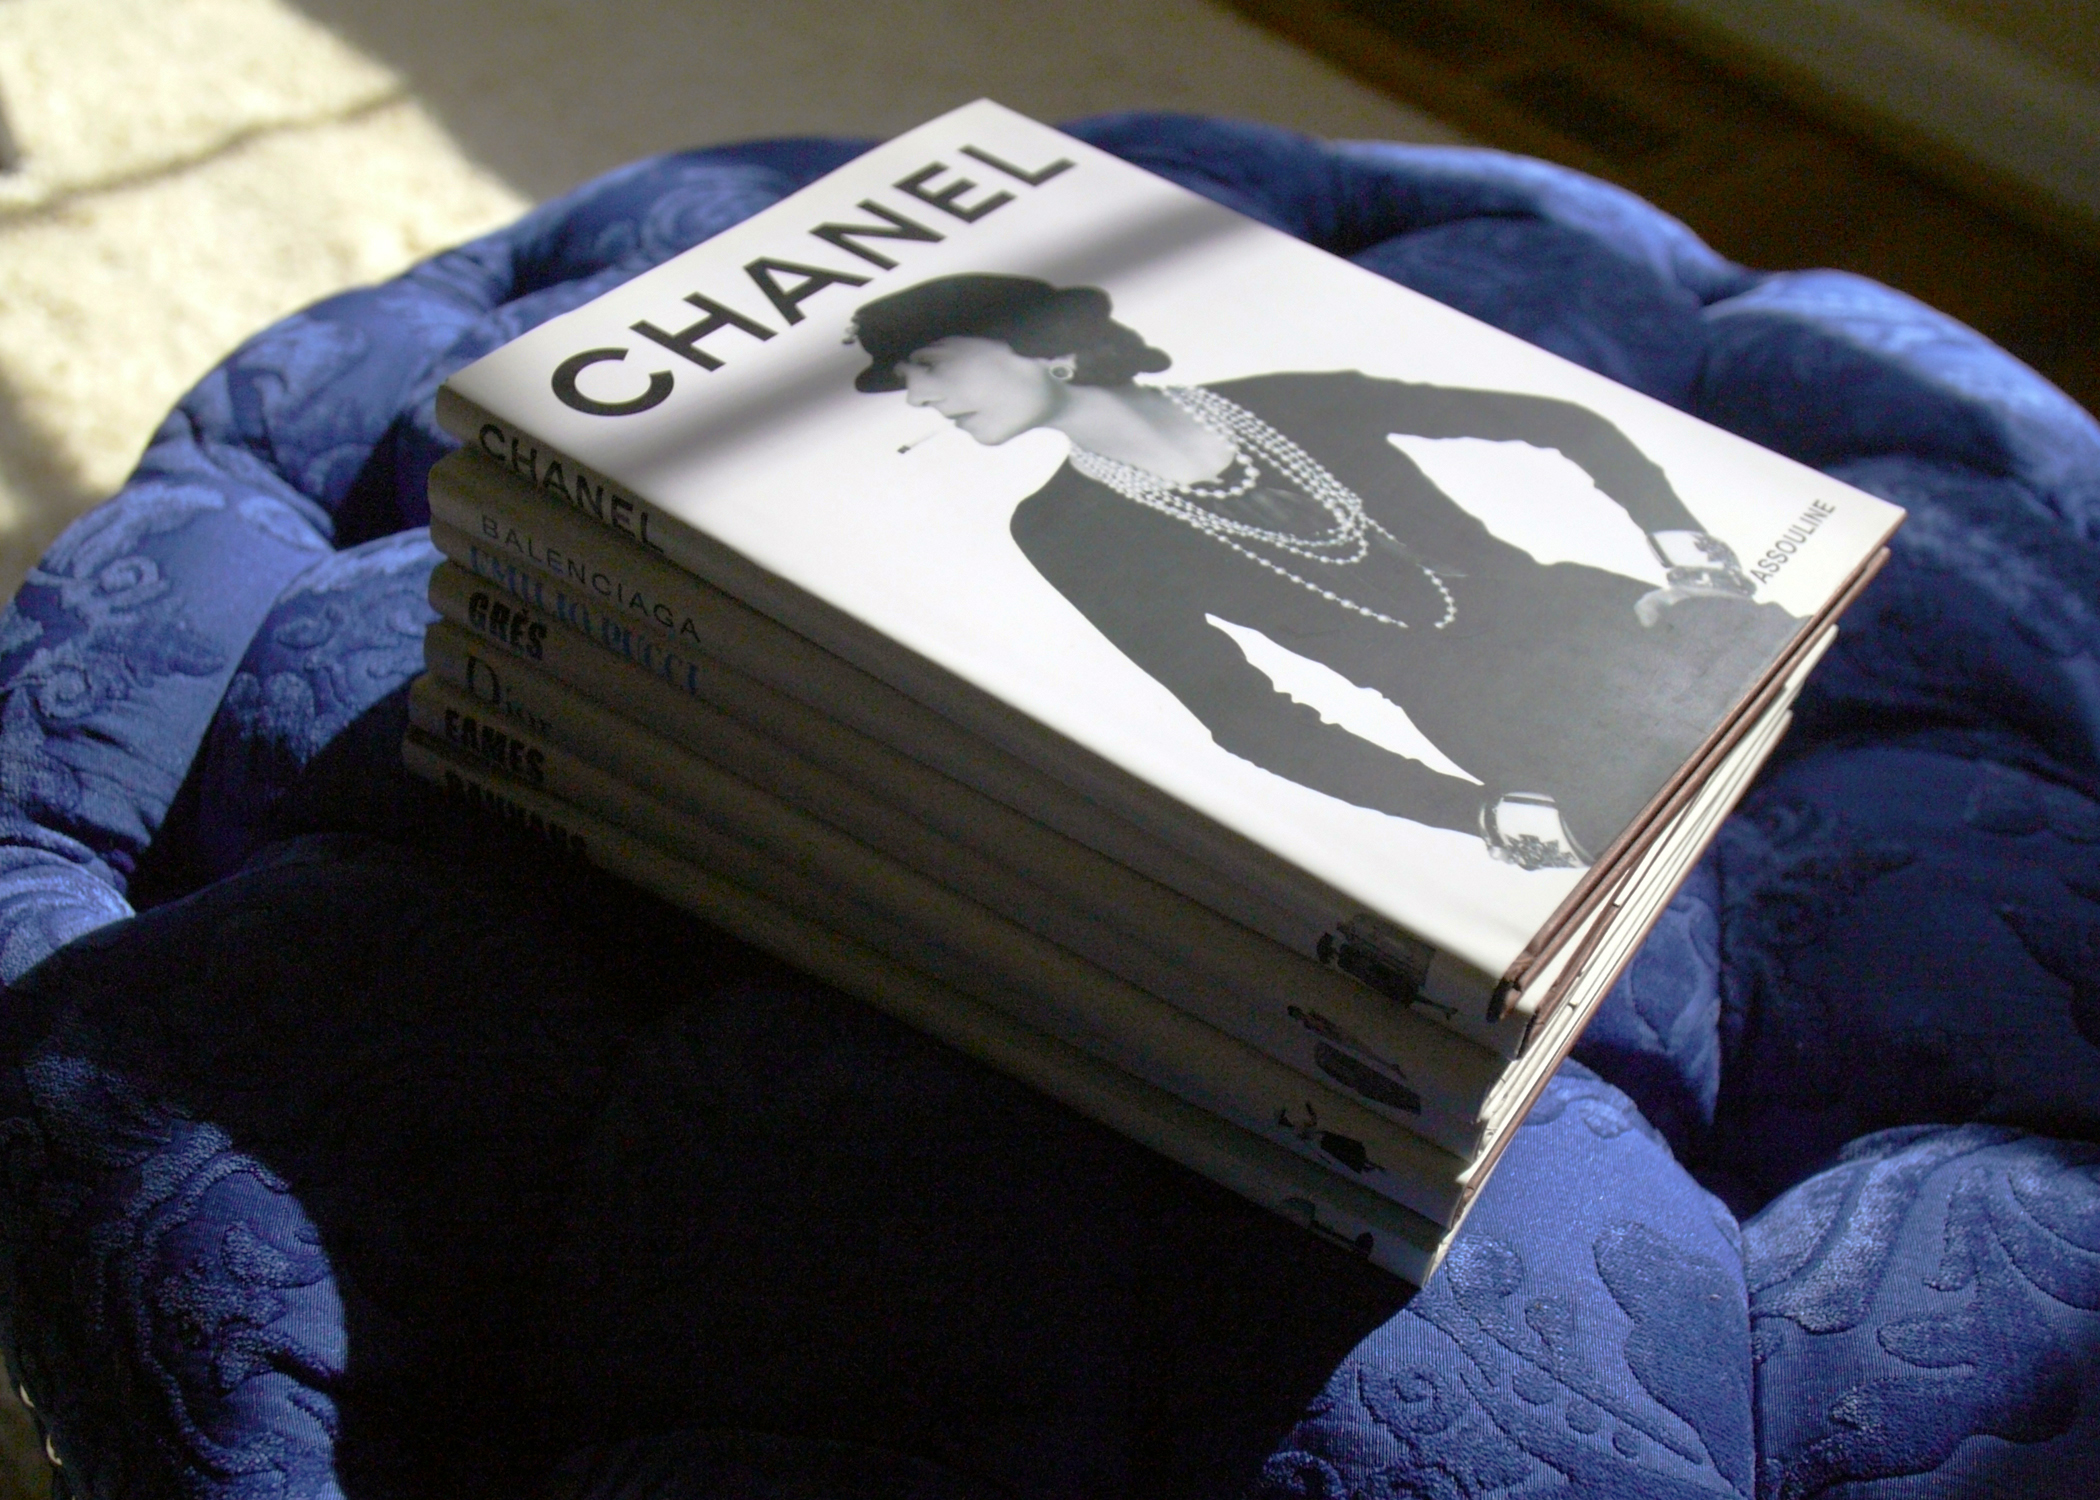 chanel book on ottoman.jpg